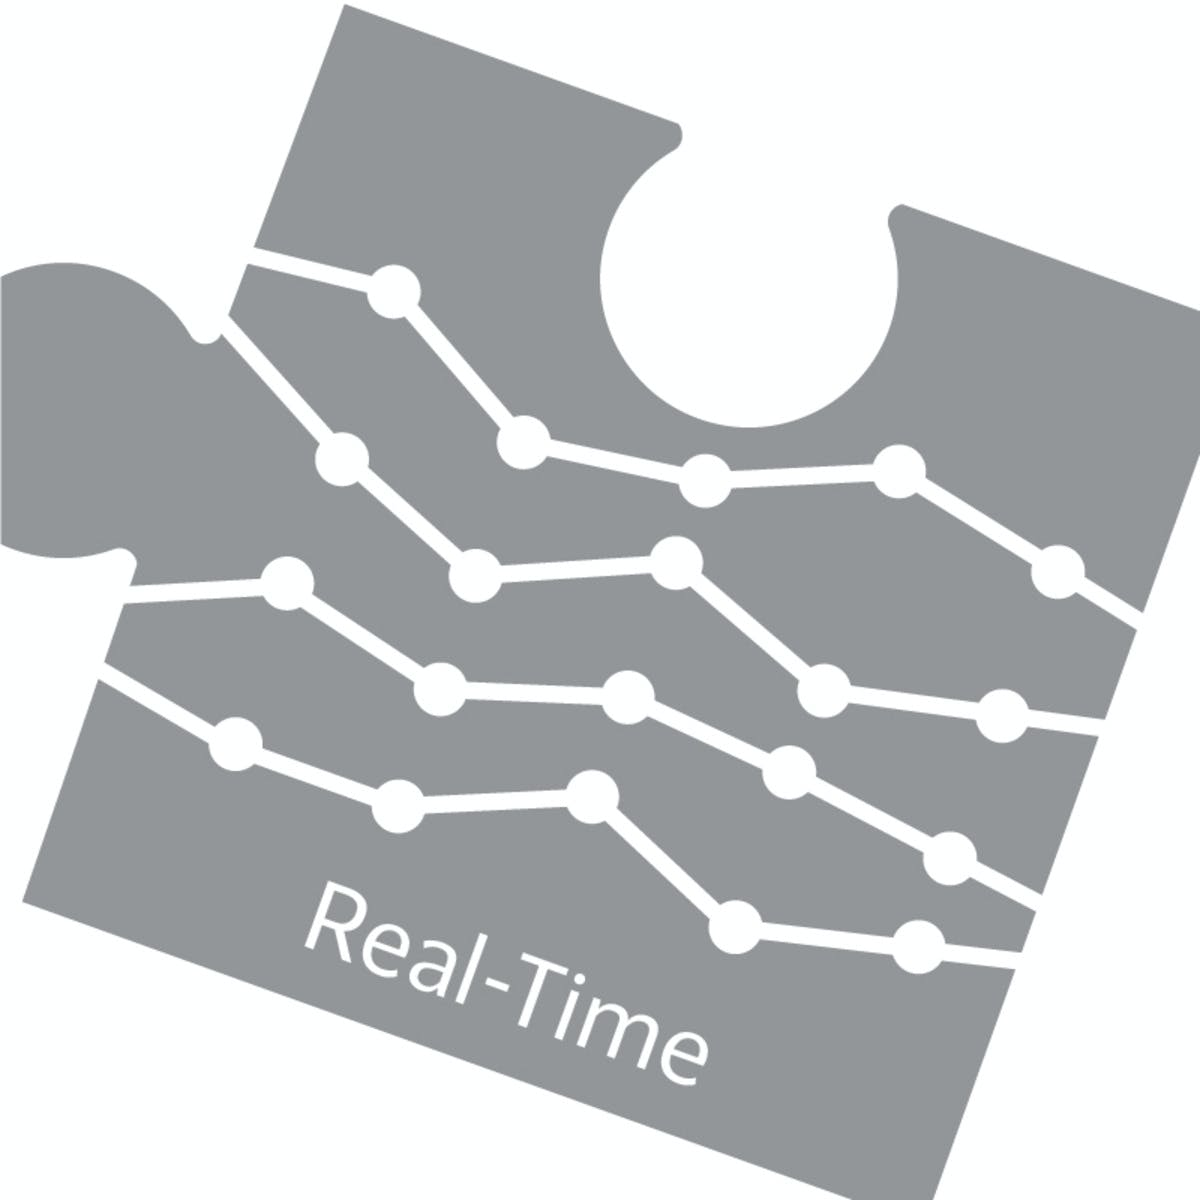 Big Data Applications: Real-Time Streaming